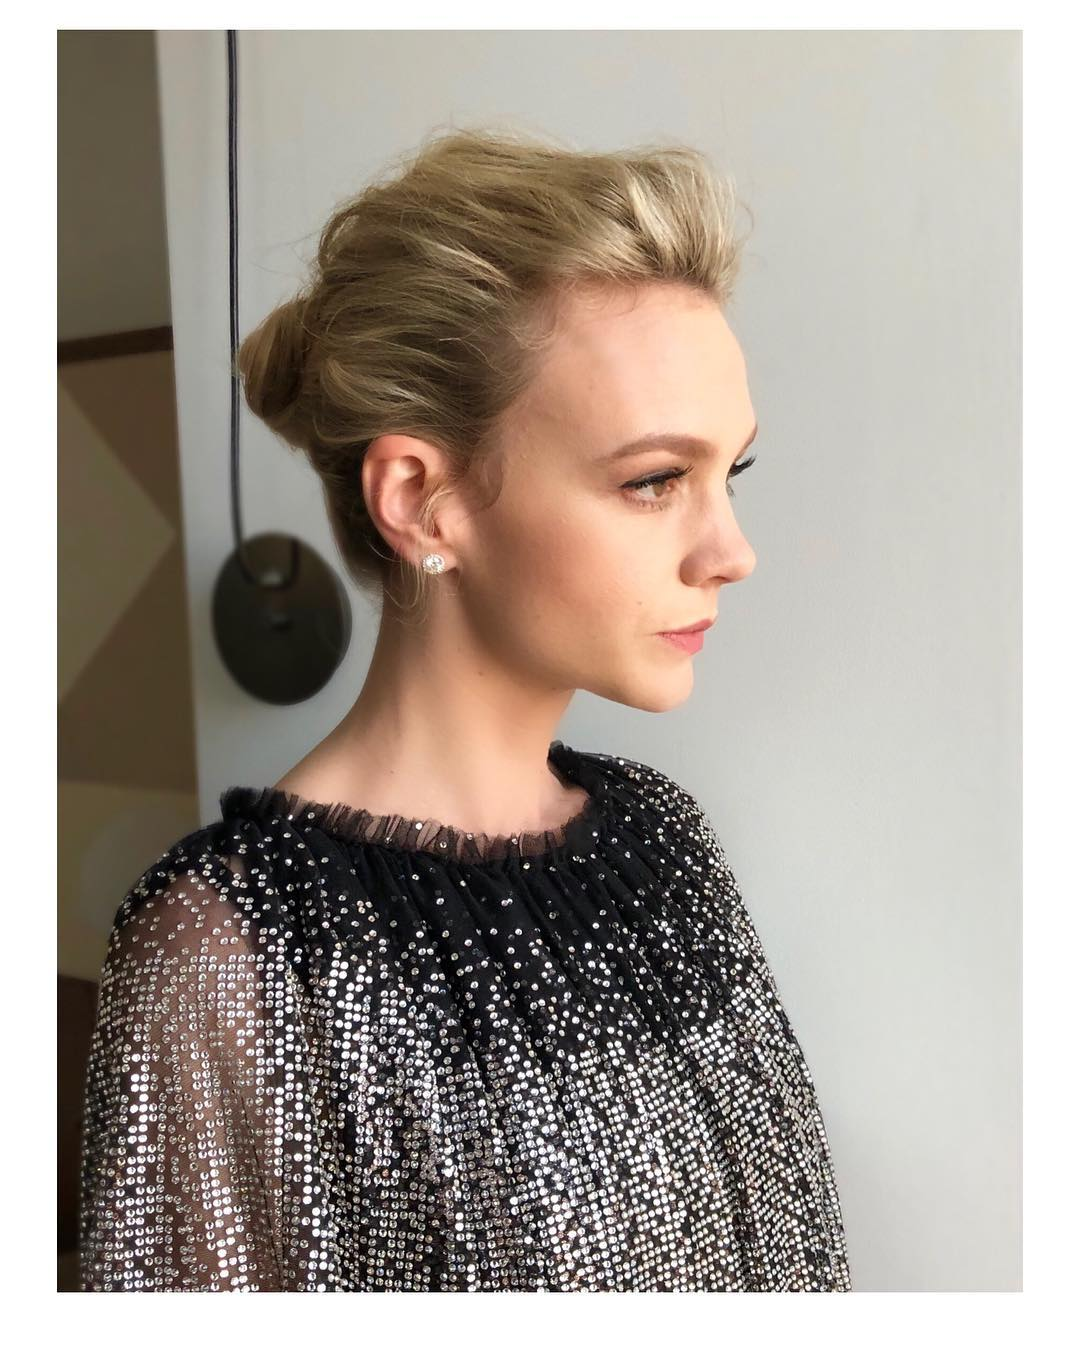 Carey Mulligan Beautifull hairstyle